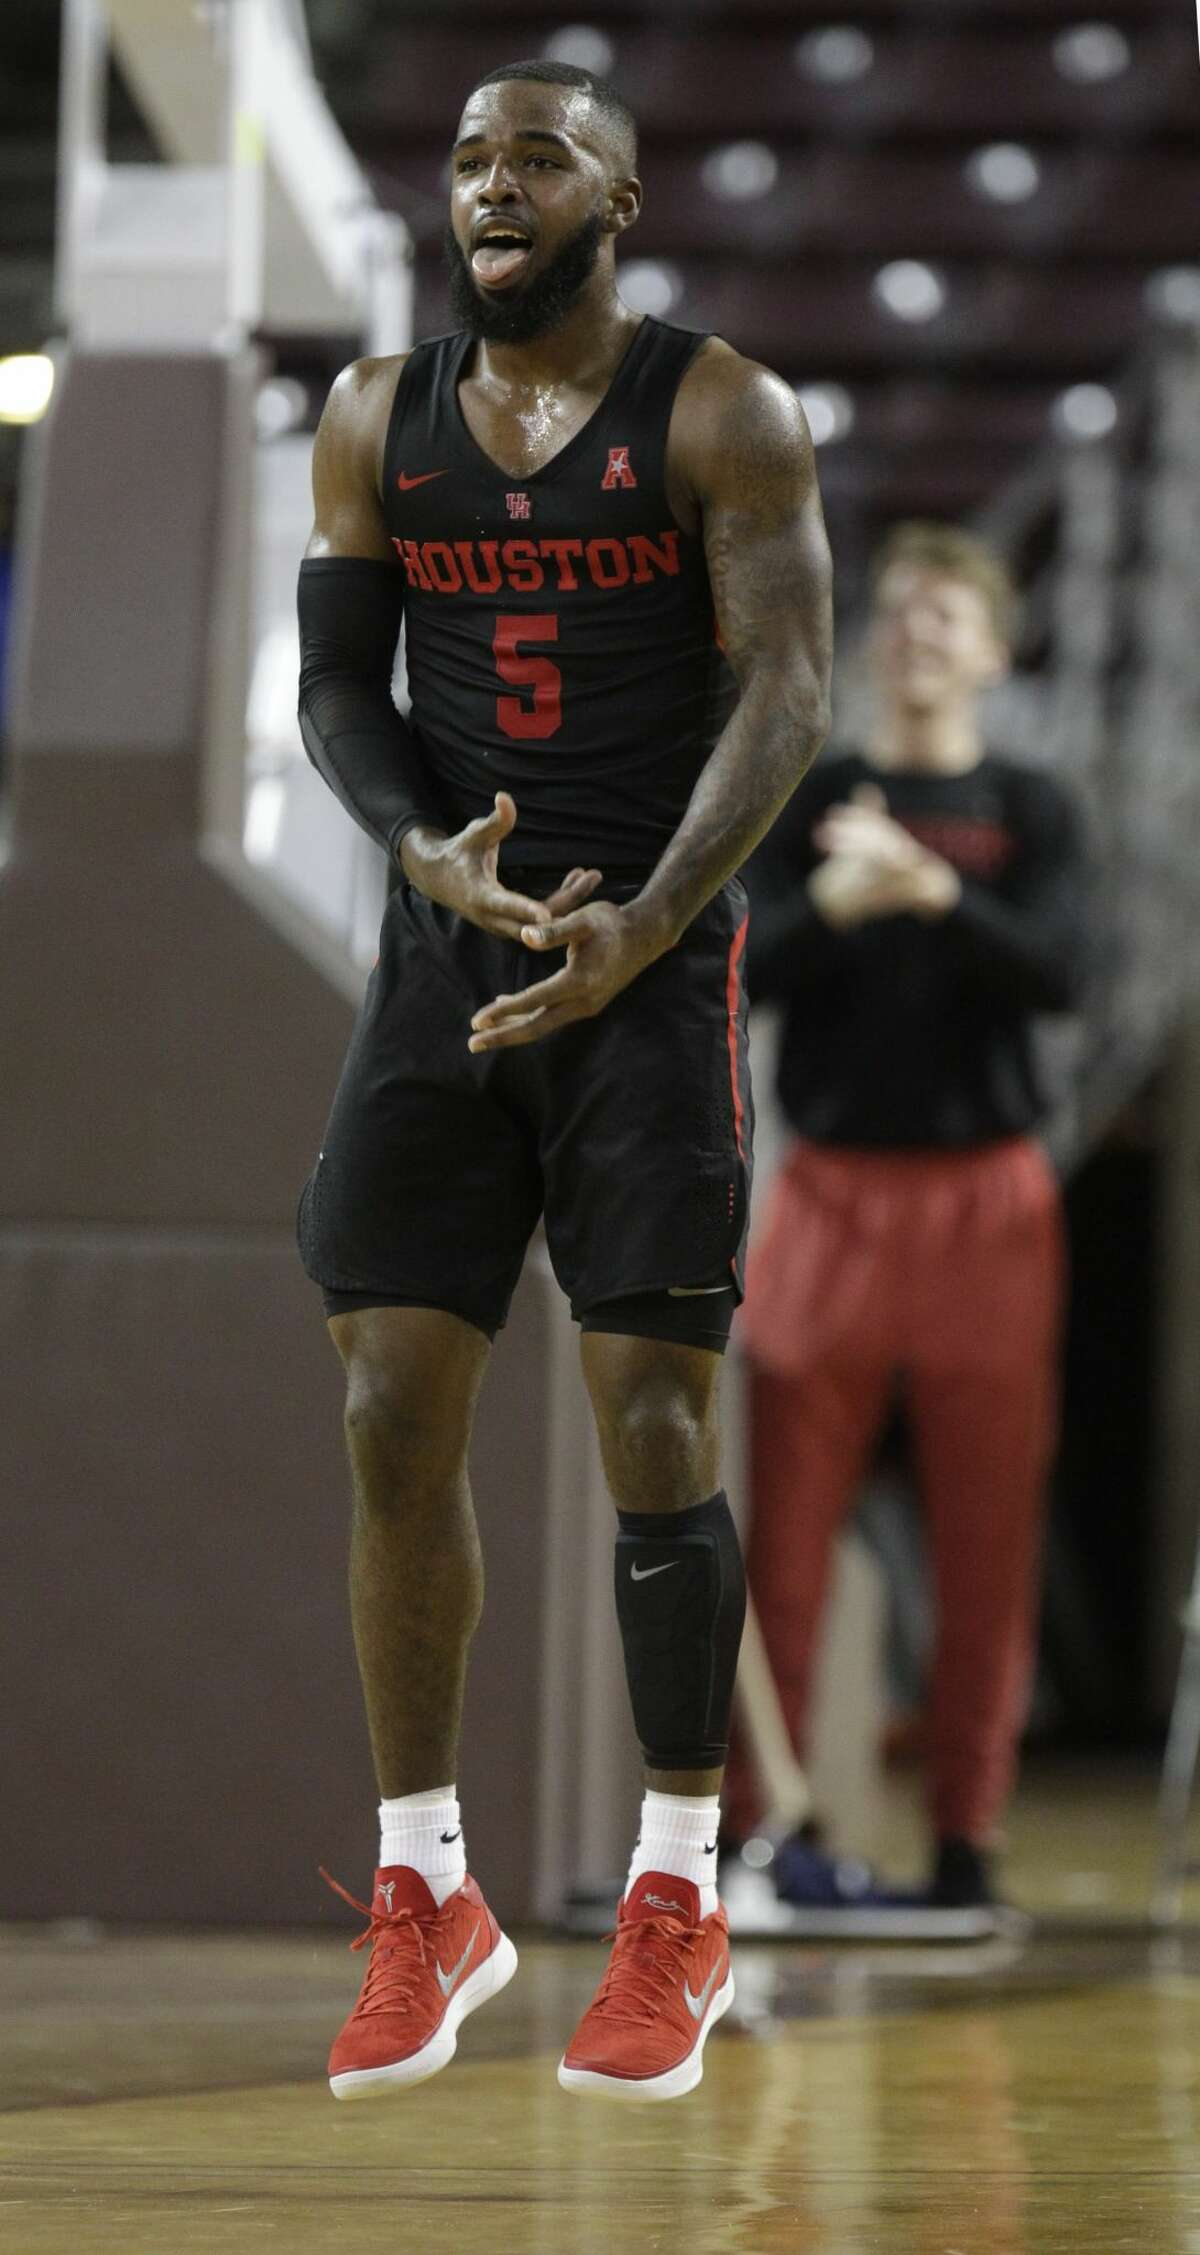 University of Houston Cory Davis Jr. celebrates a three point shot against the Southern Methodist University during first half of game at Texas Southern University Thursday, Feb. 8, 2018, in Houston. ( Melissa Phillip / Houston Chronicle )